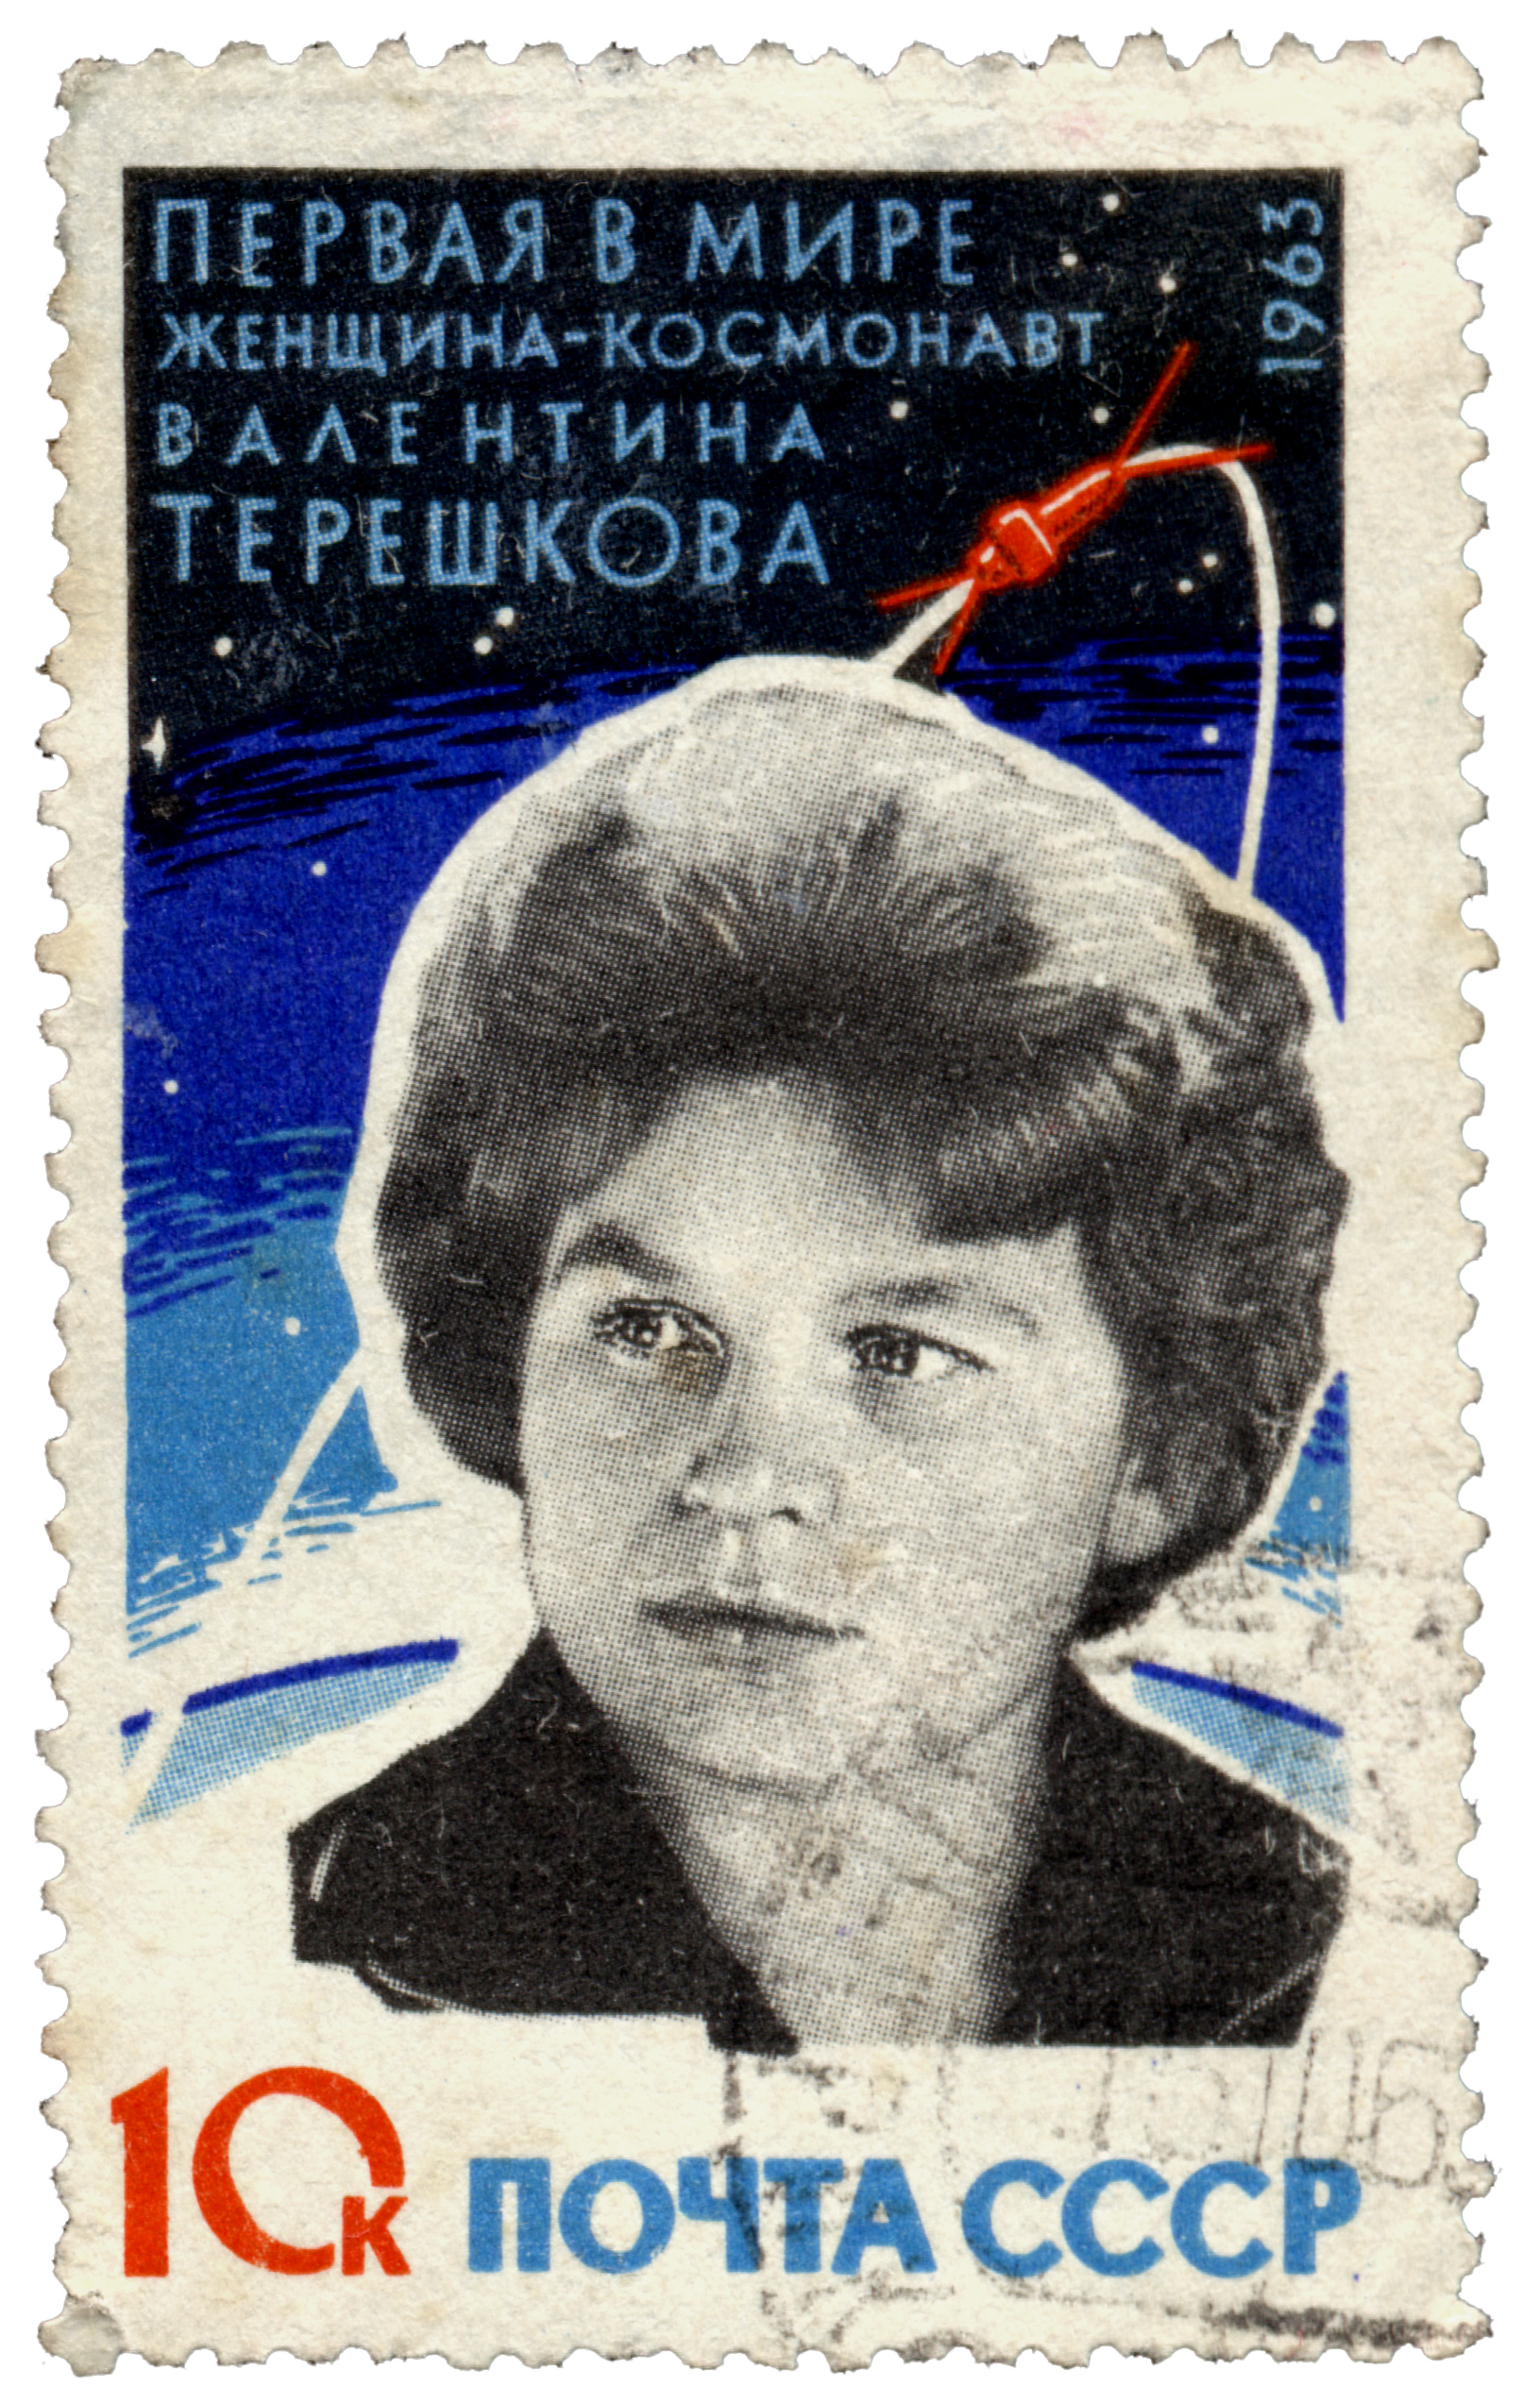 http://upload.wikimedia.org/wikipedia/commons/7/7f/Soviet_Union-1963-Stamp-0.10._Valentina_Tereshkova.jpg